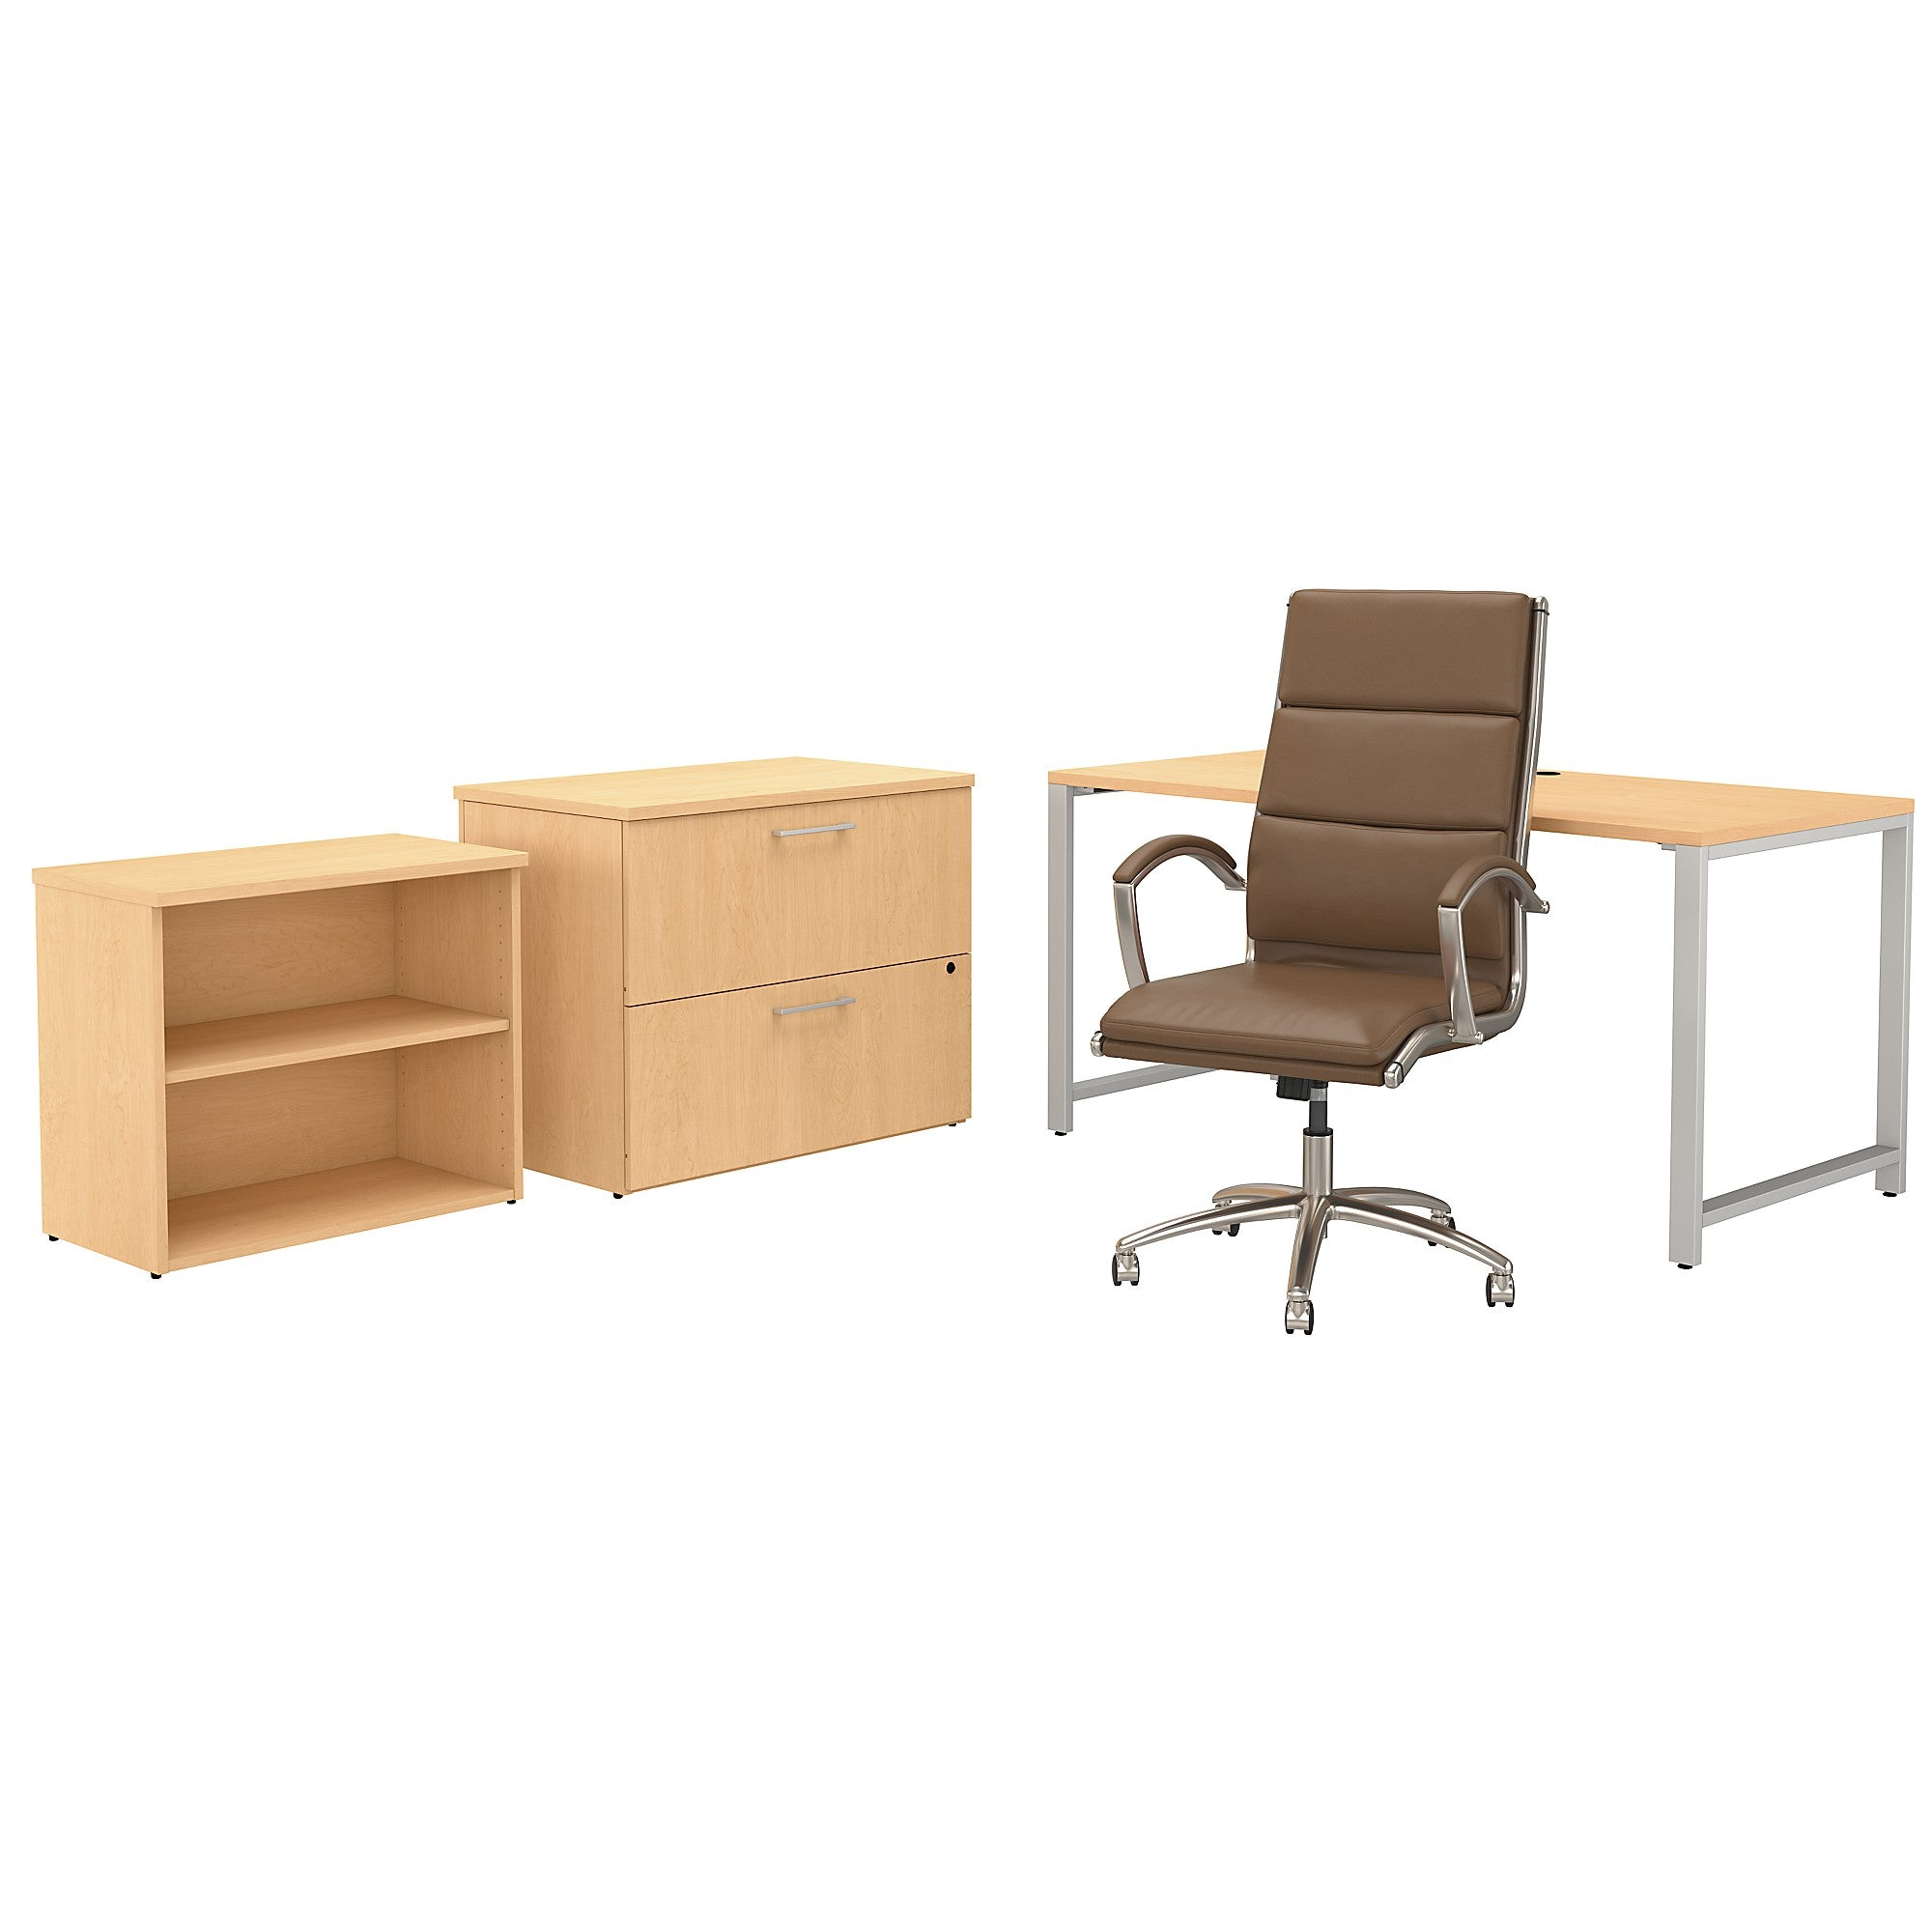 400 Series 60W x 30D Table Desk & Chair Set with Storage